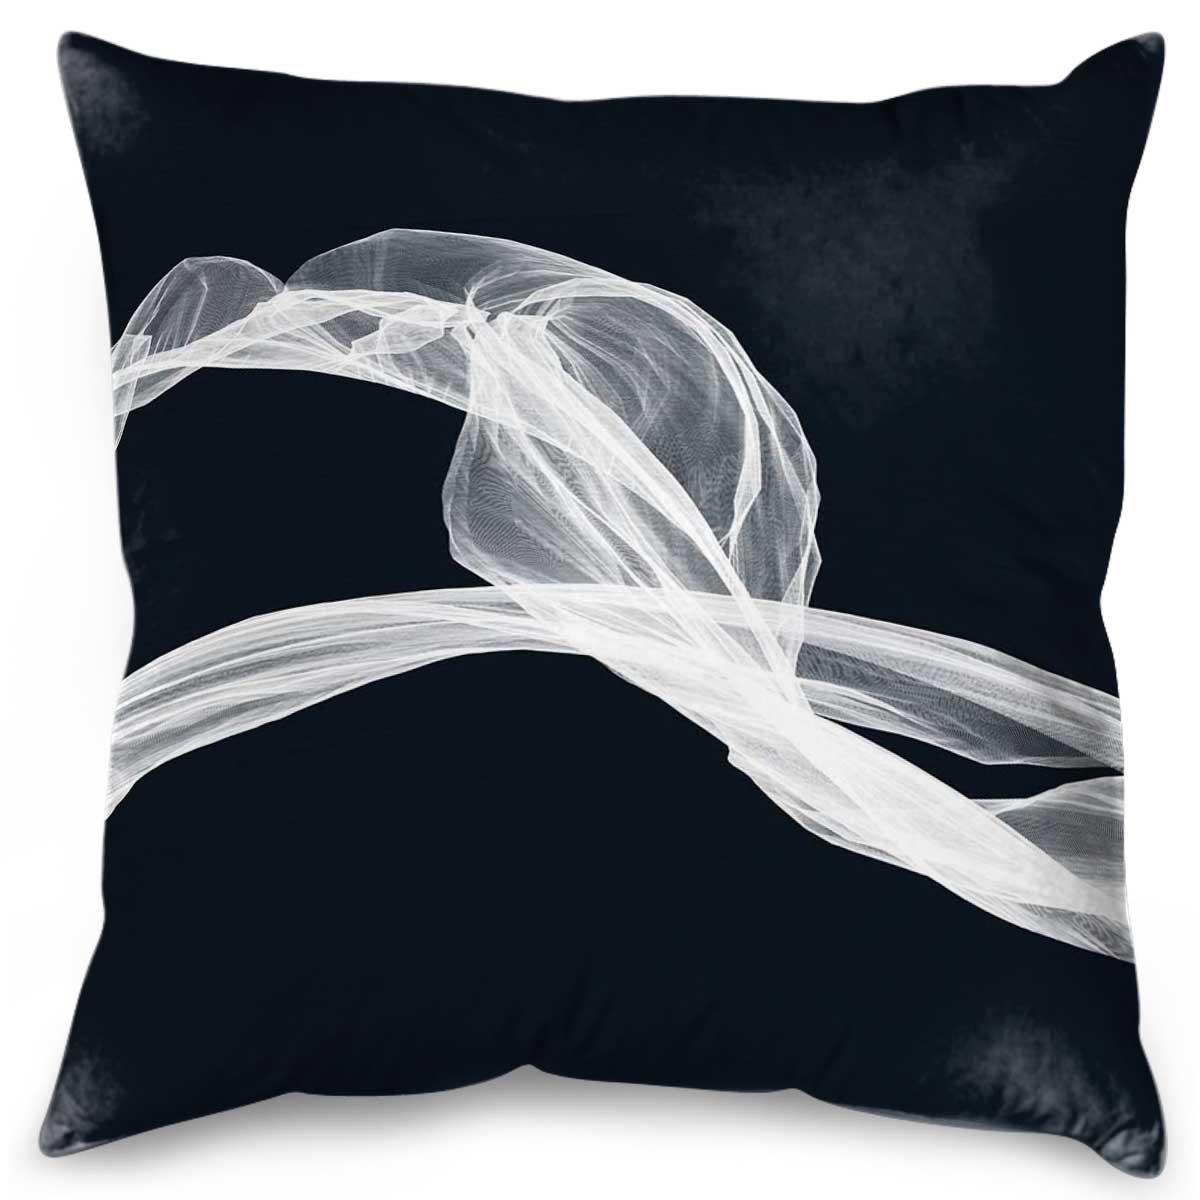 Our Cushions Have A Fine Soft Velvet Texture Made With